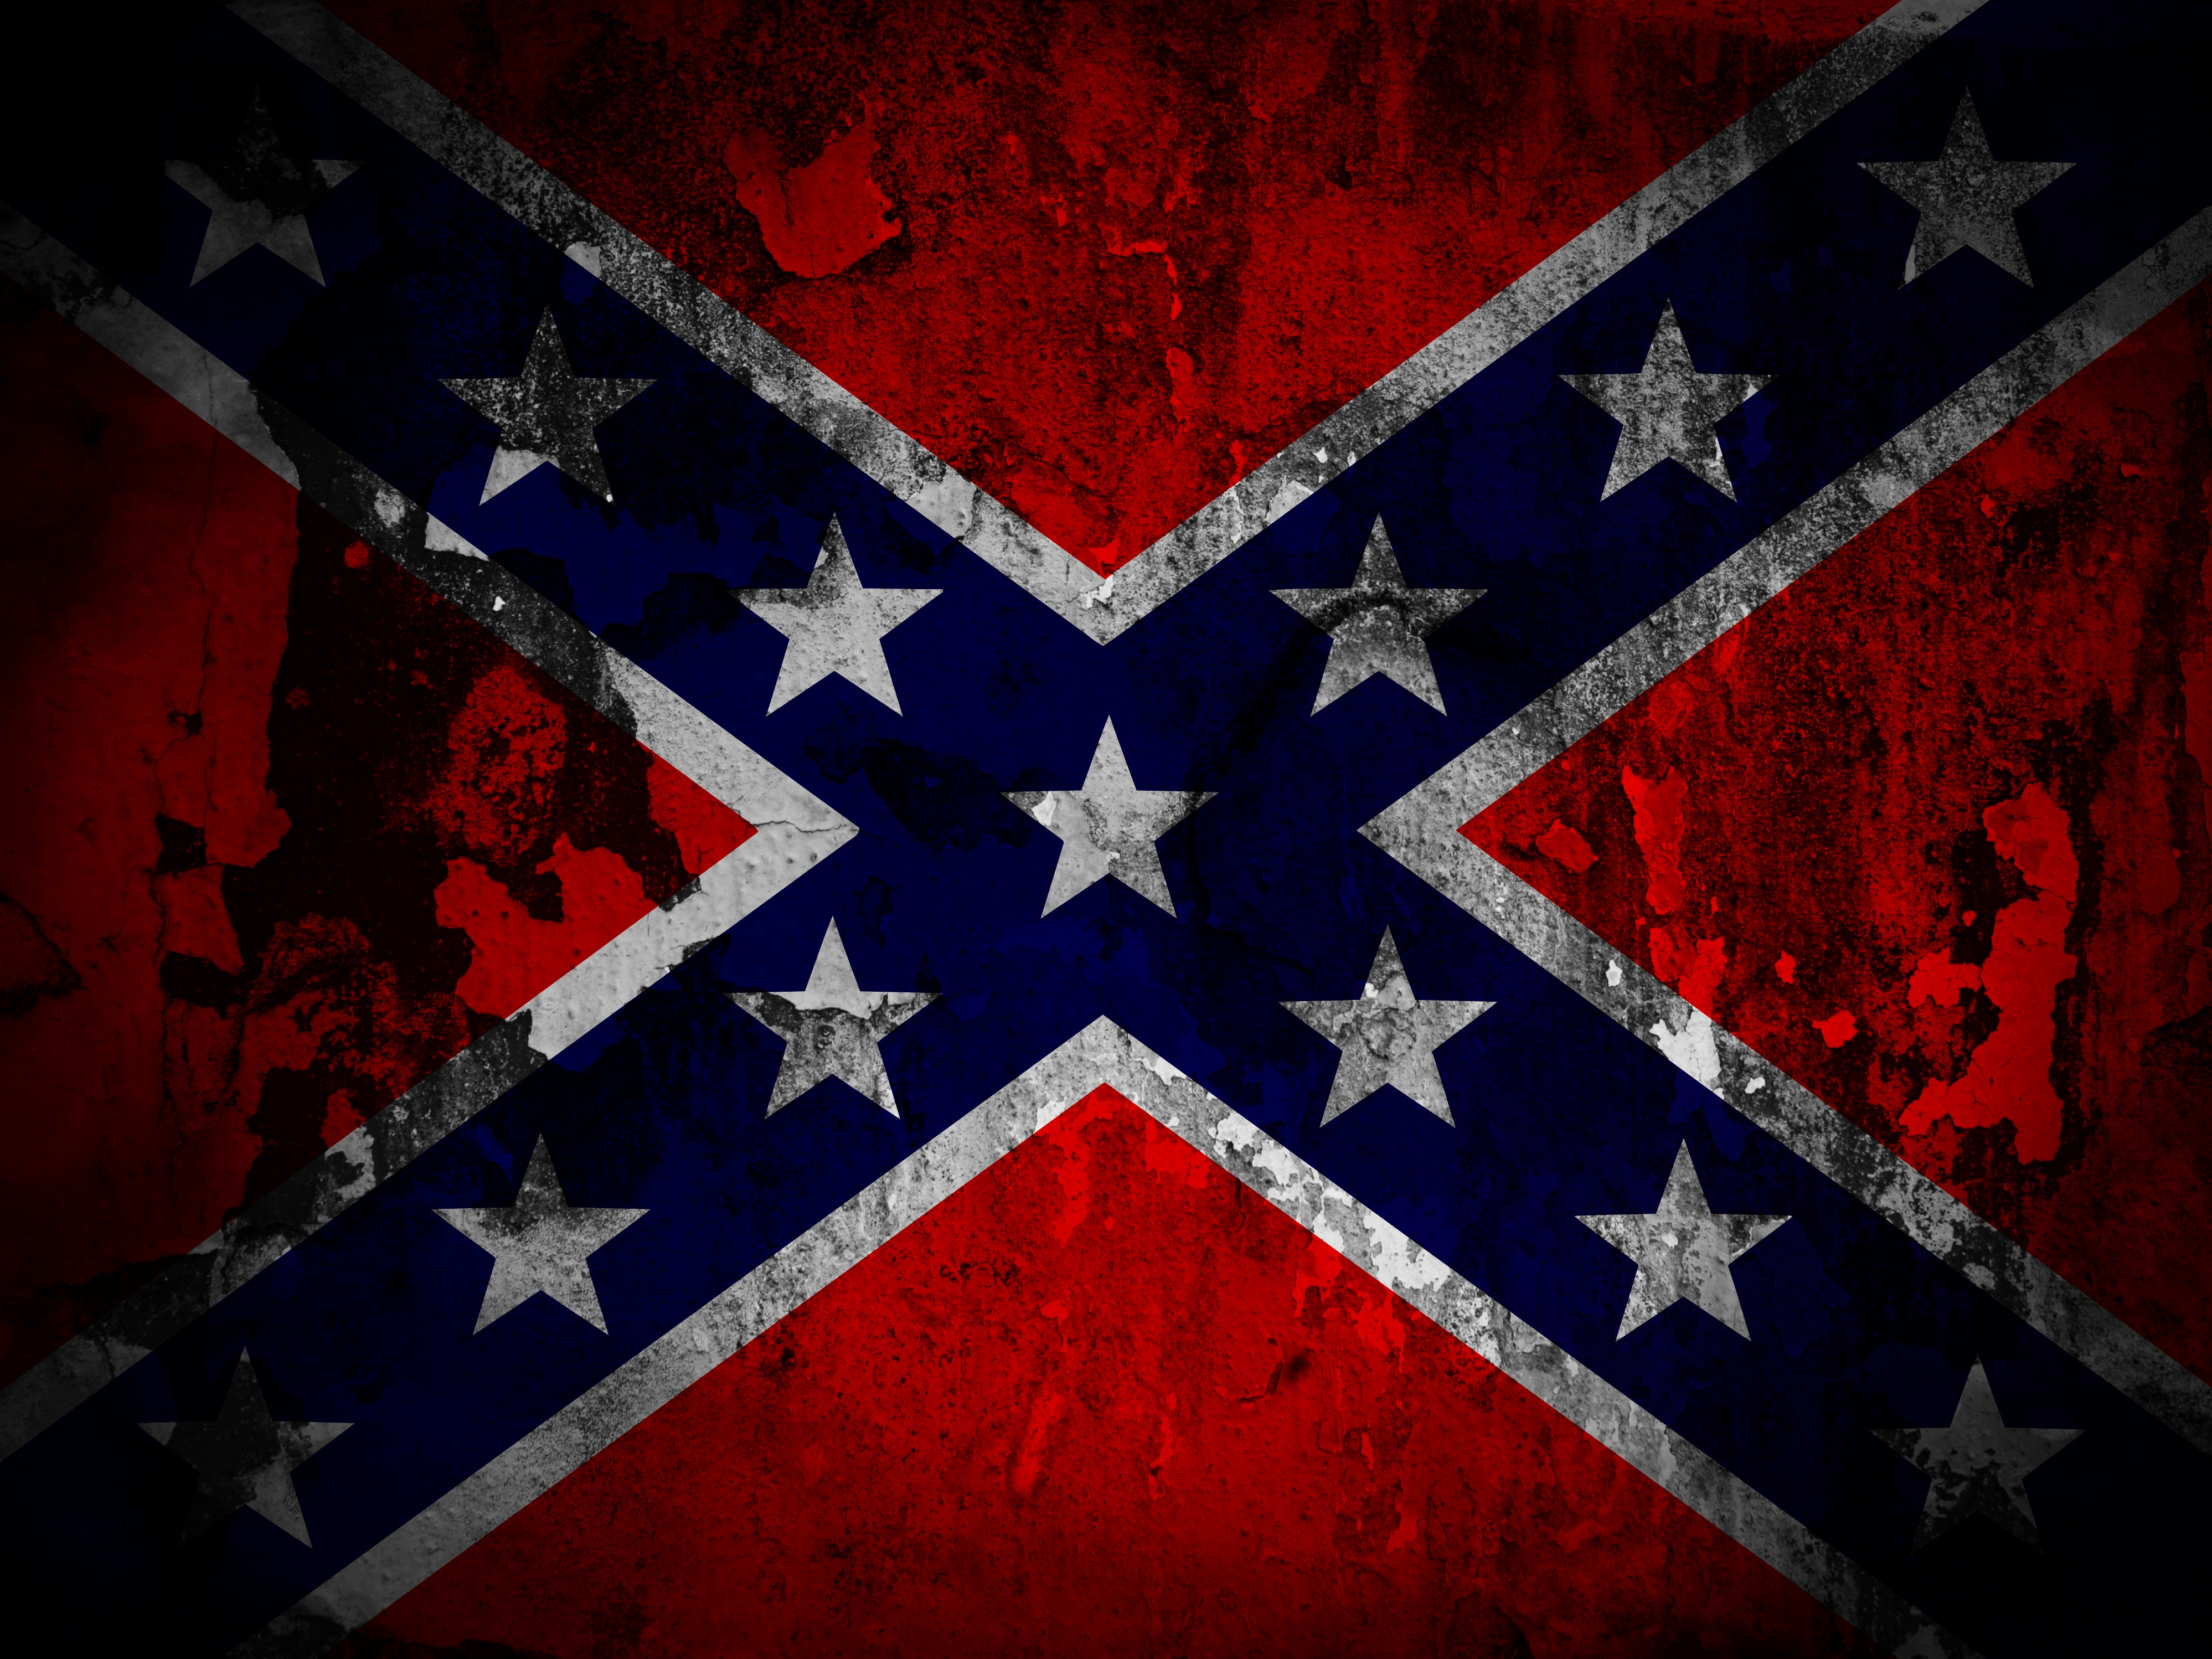 Rebel Flags Images 11 Cool Wallpaperizcom 3995x2996